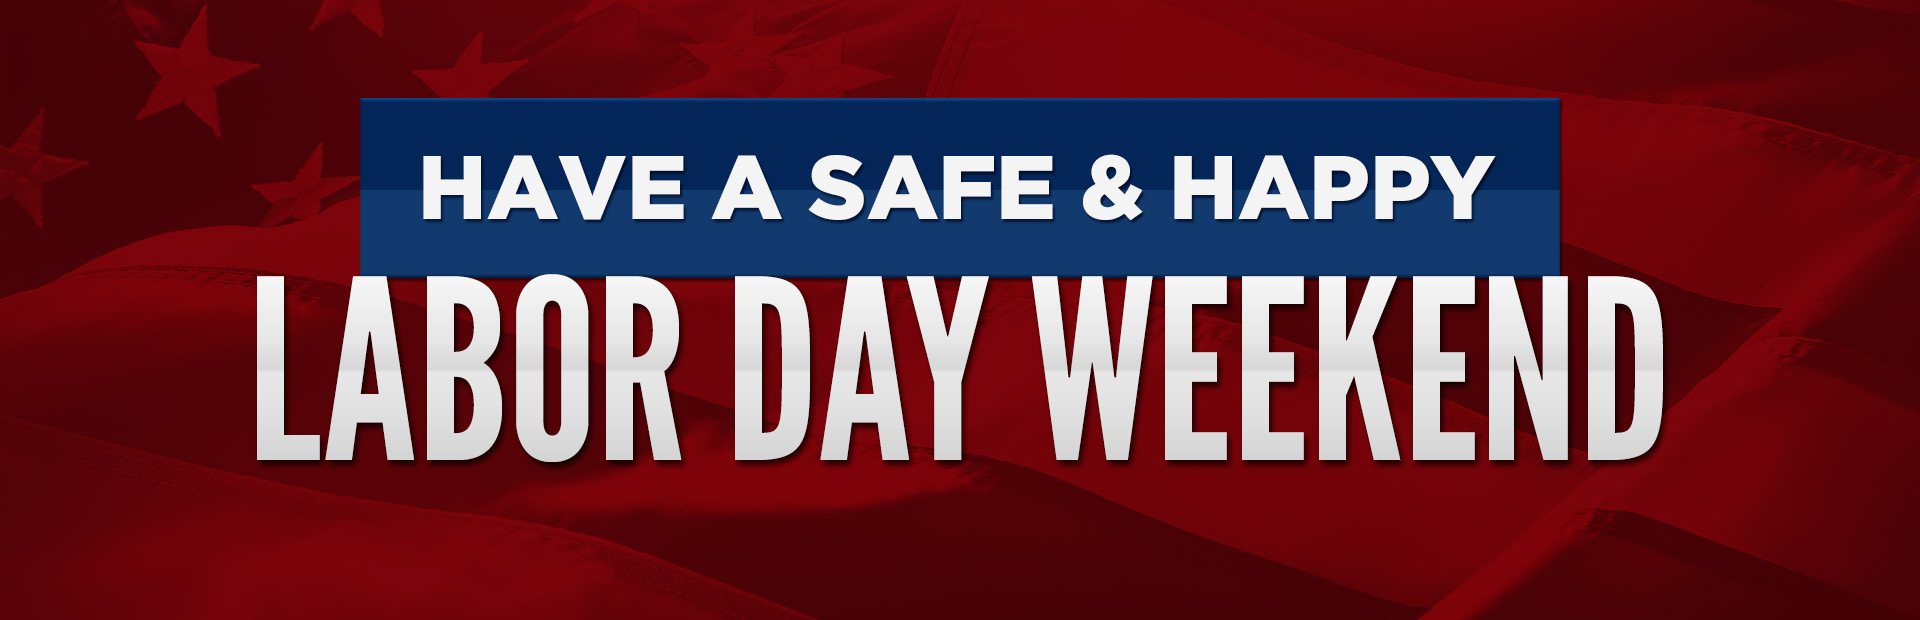 Have a safe and happy Labor Day weekend!